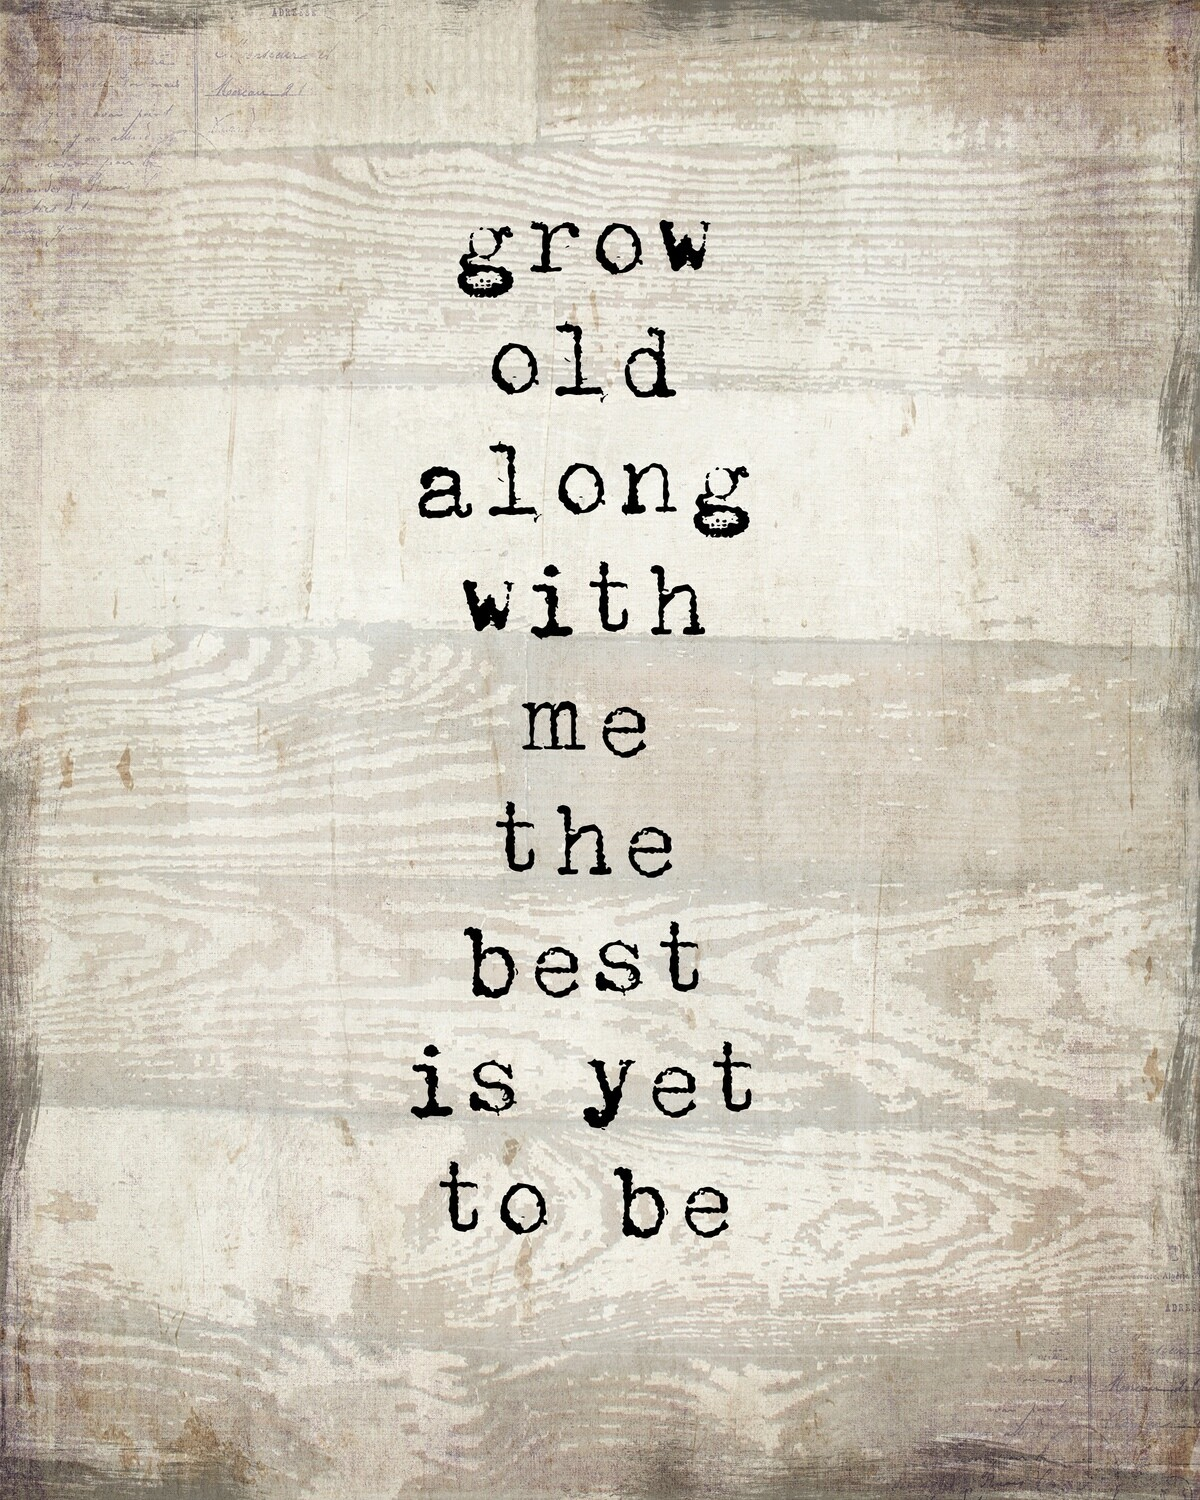 """""""Grow old along with me the best is yet to be"""" Print on Wood 4x6 Overstock"""